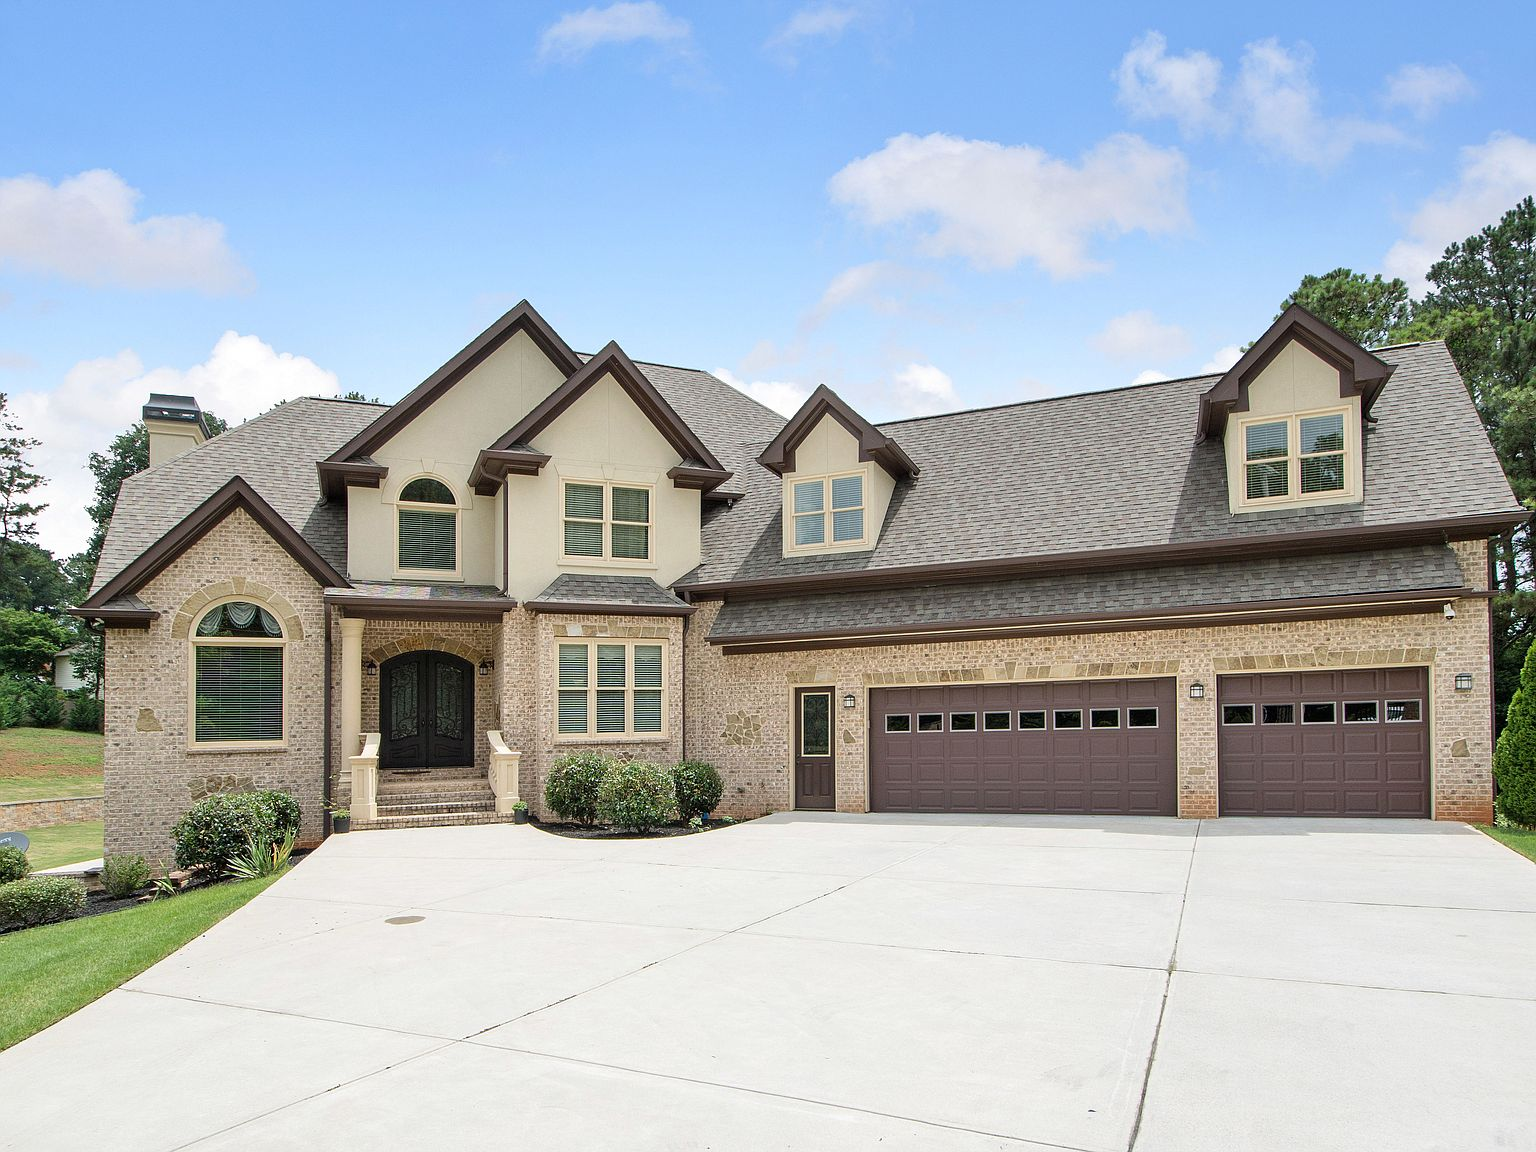 2181 Sever Rd Lawrenceville Ga 30043 Zillow